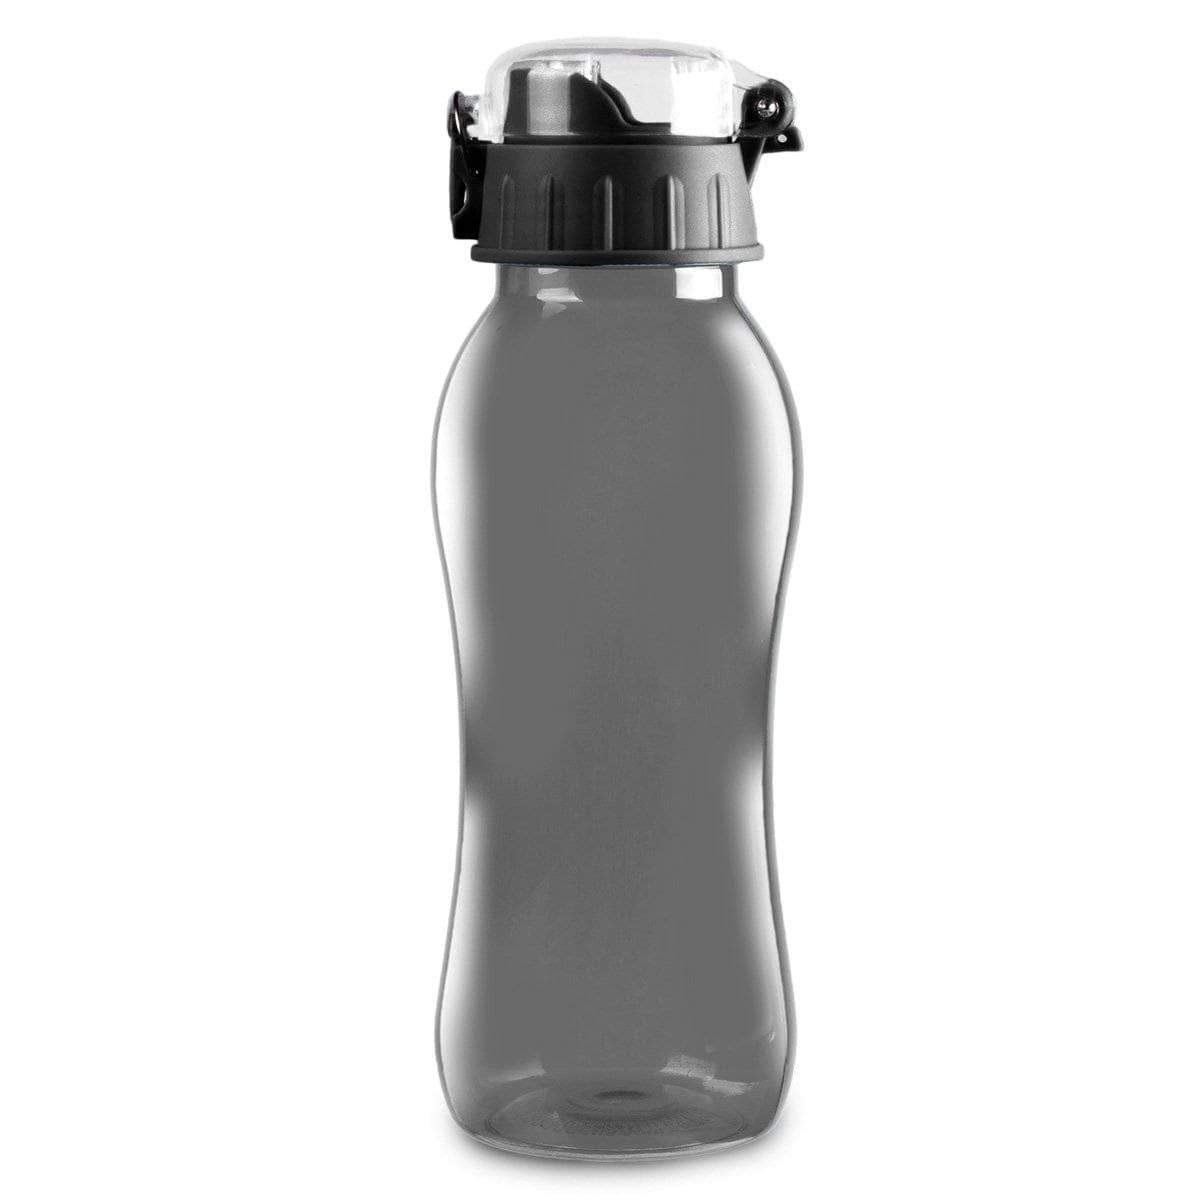 Geo Bottles Bottles Black 20oz BPA Free Sports Bottle With Wide Mouth Opening